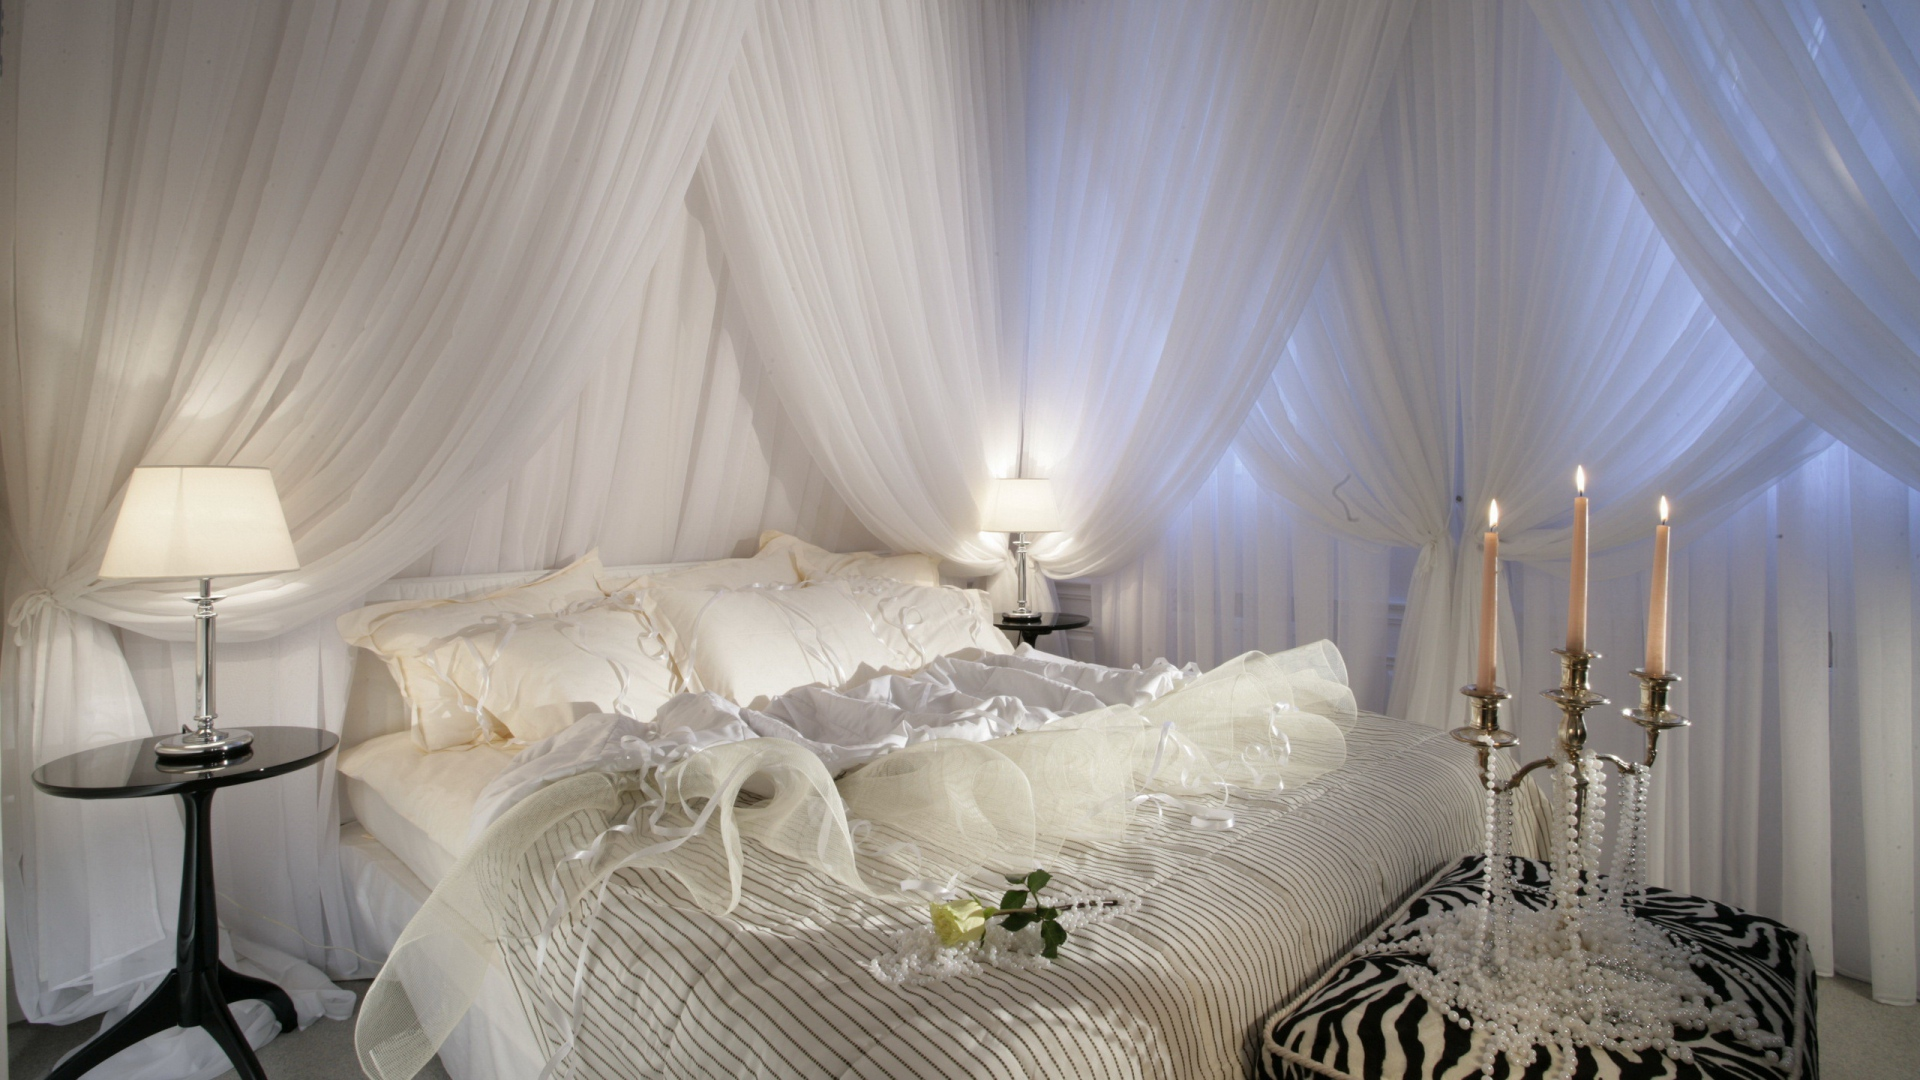 Get The Latest Bedroom Bed White Candles News Pictures And Videos Learn All About From Wallpapers4uorg Your Wallpaper